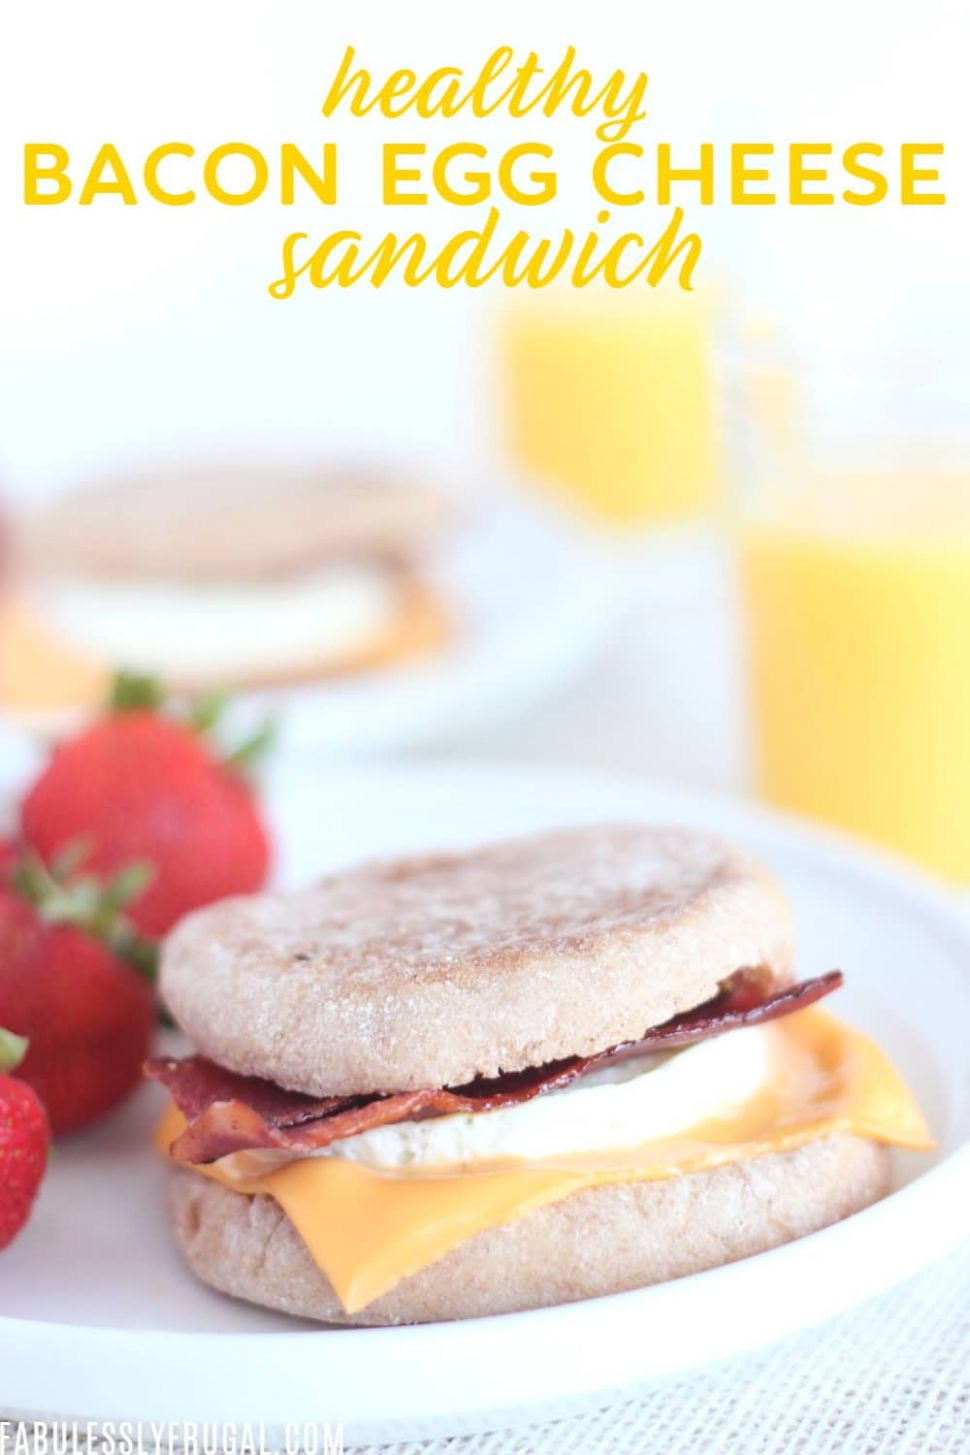 Healthy Bacon, Egg & Cheese Sandwich Recipe